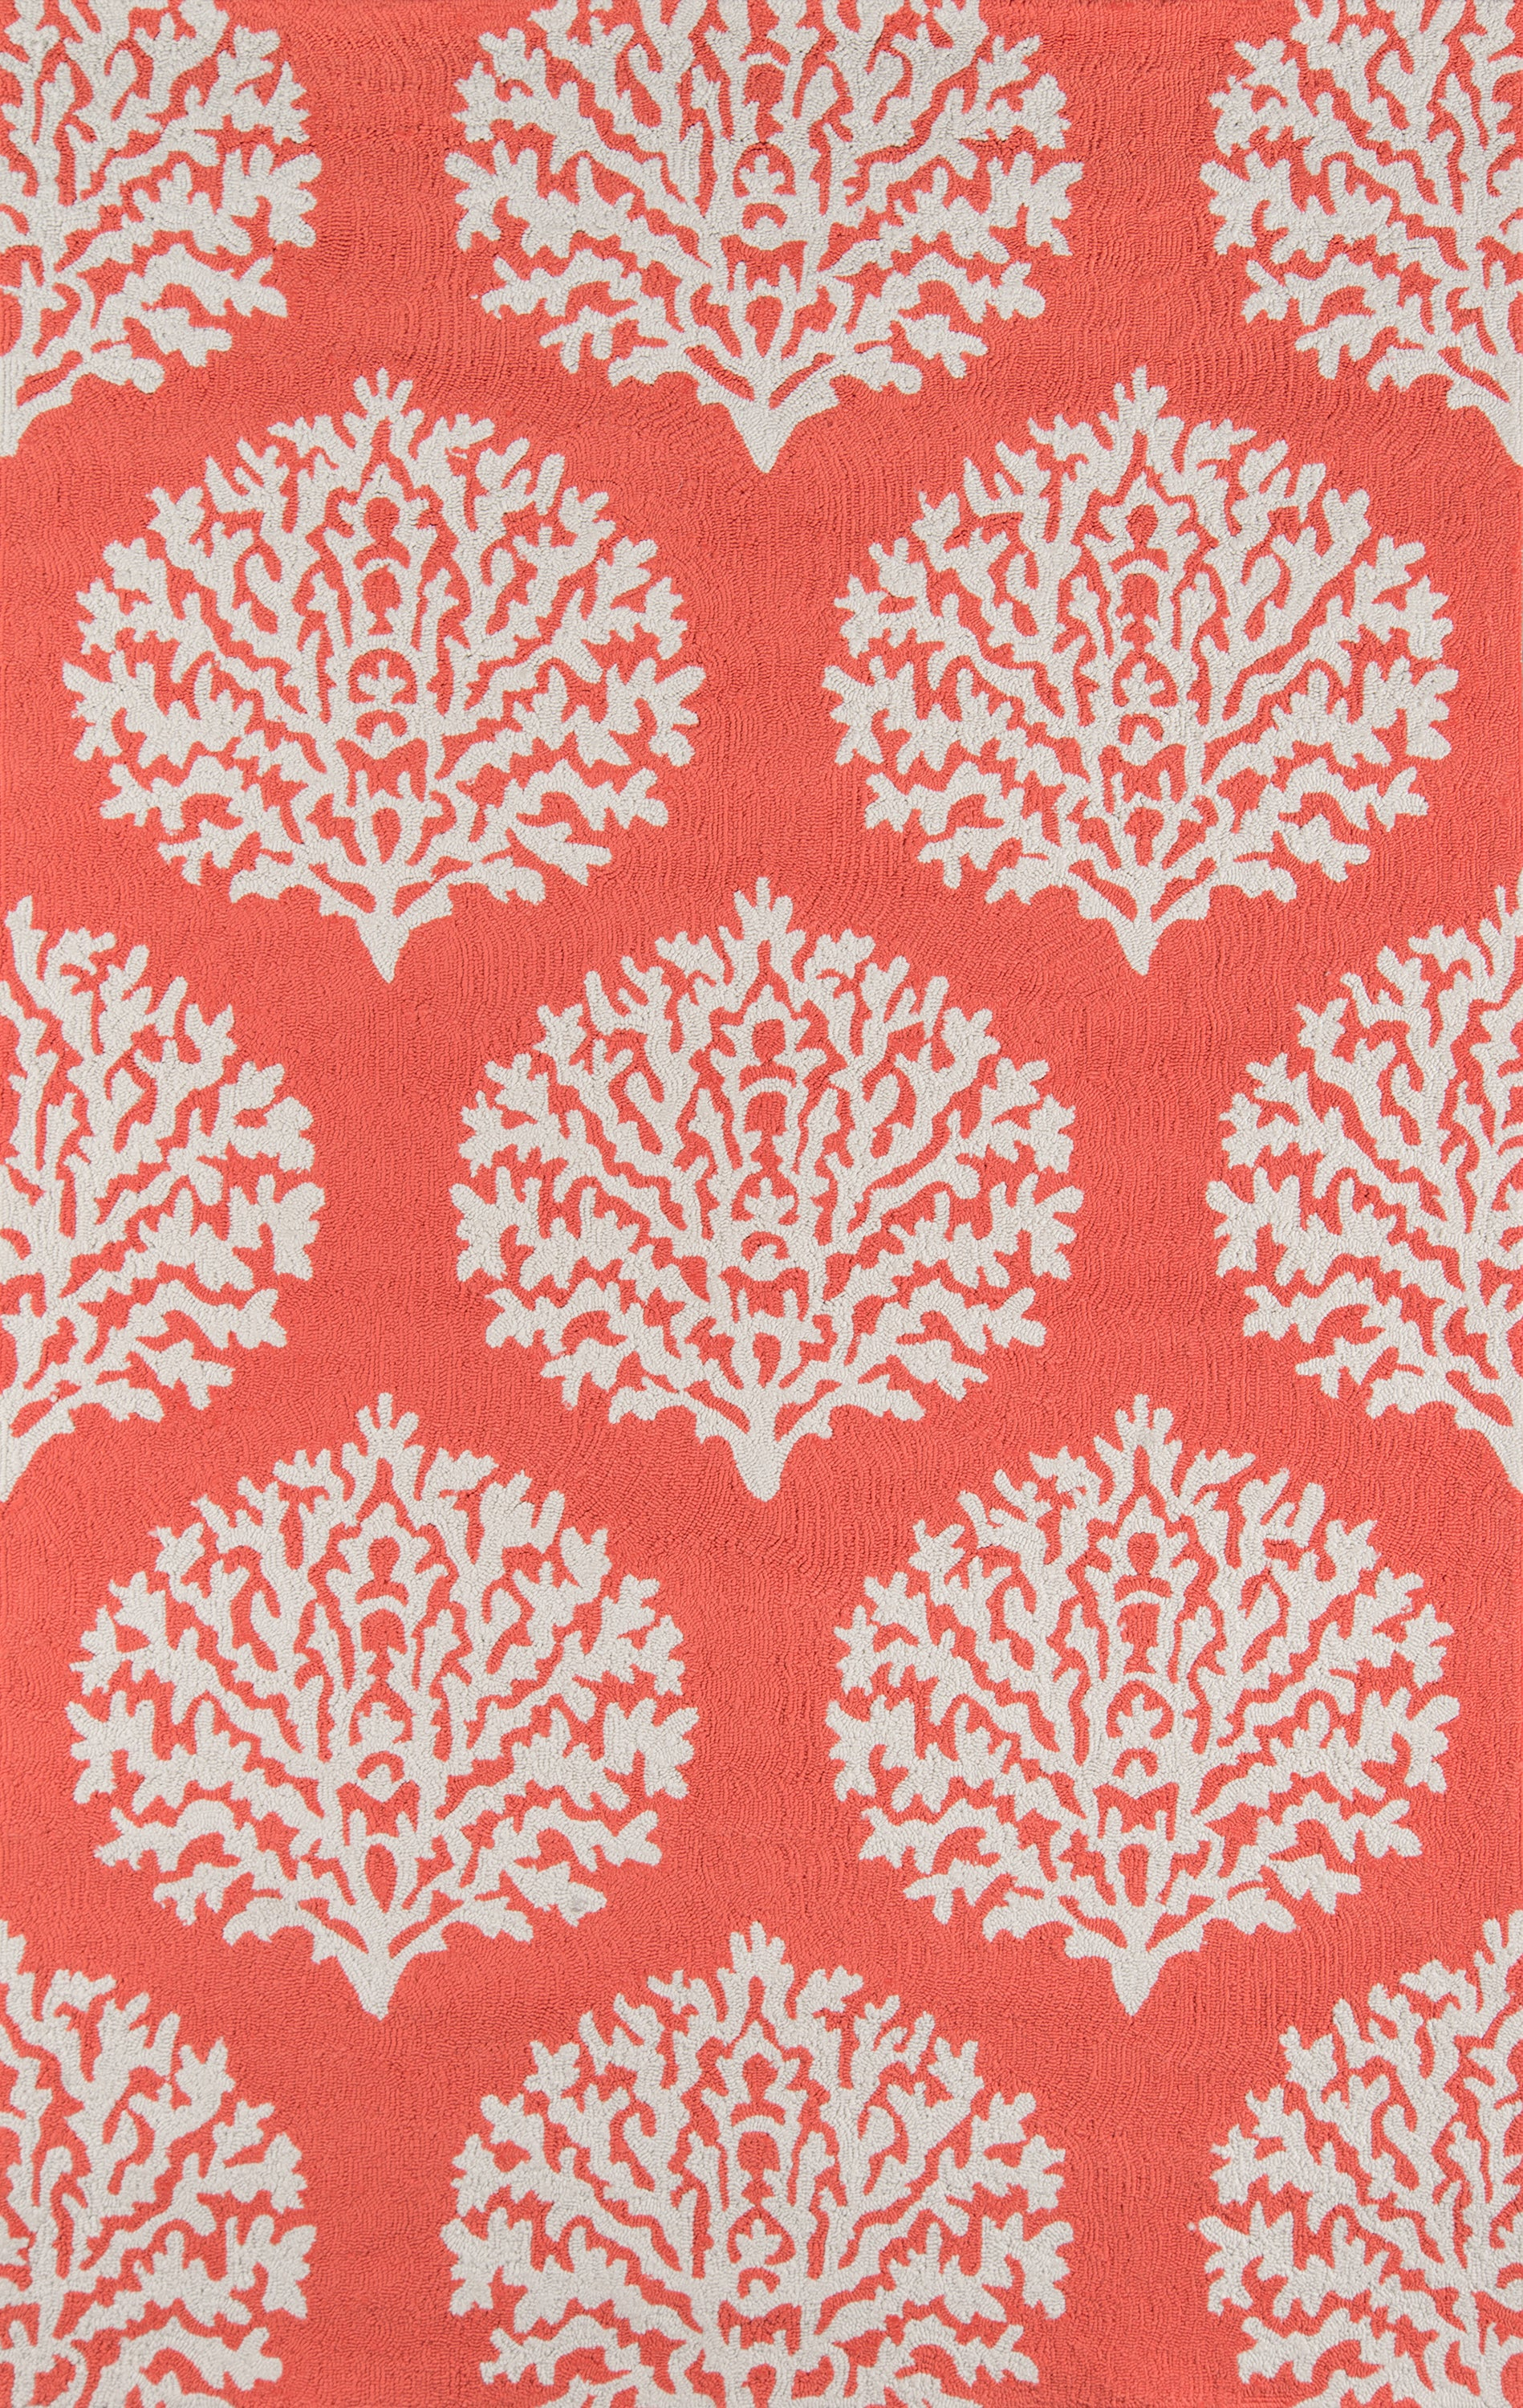 Rectangle, Round 5x8 Coral Damask Hand Hooked Synthetics Contemporary recommended for Bedroom, Bathroom, Outdoor, Dining Room, Office, Hallway, Living Room